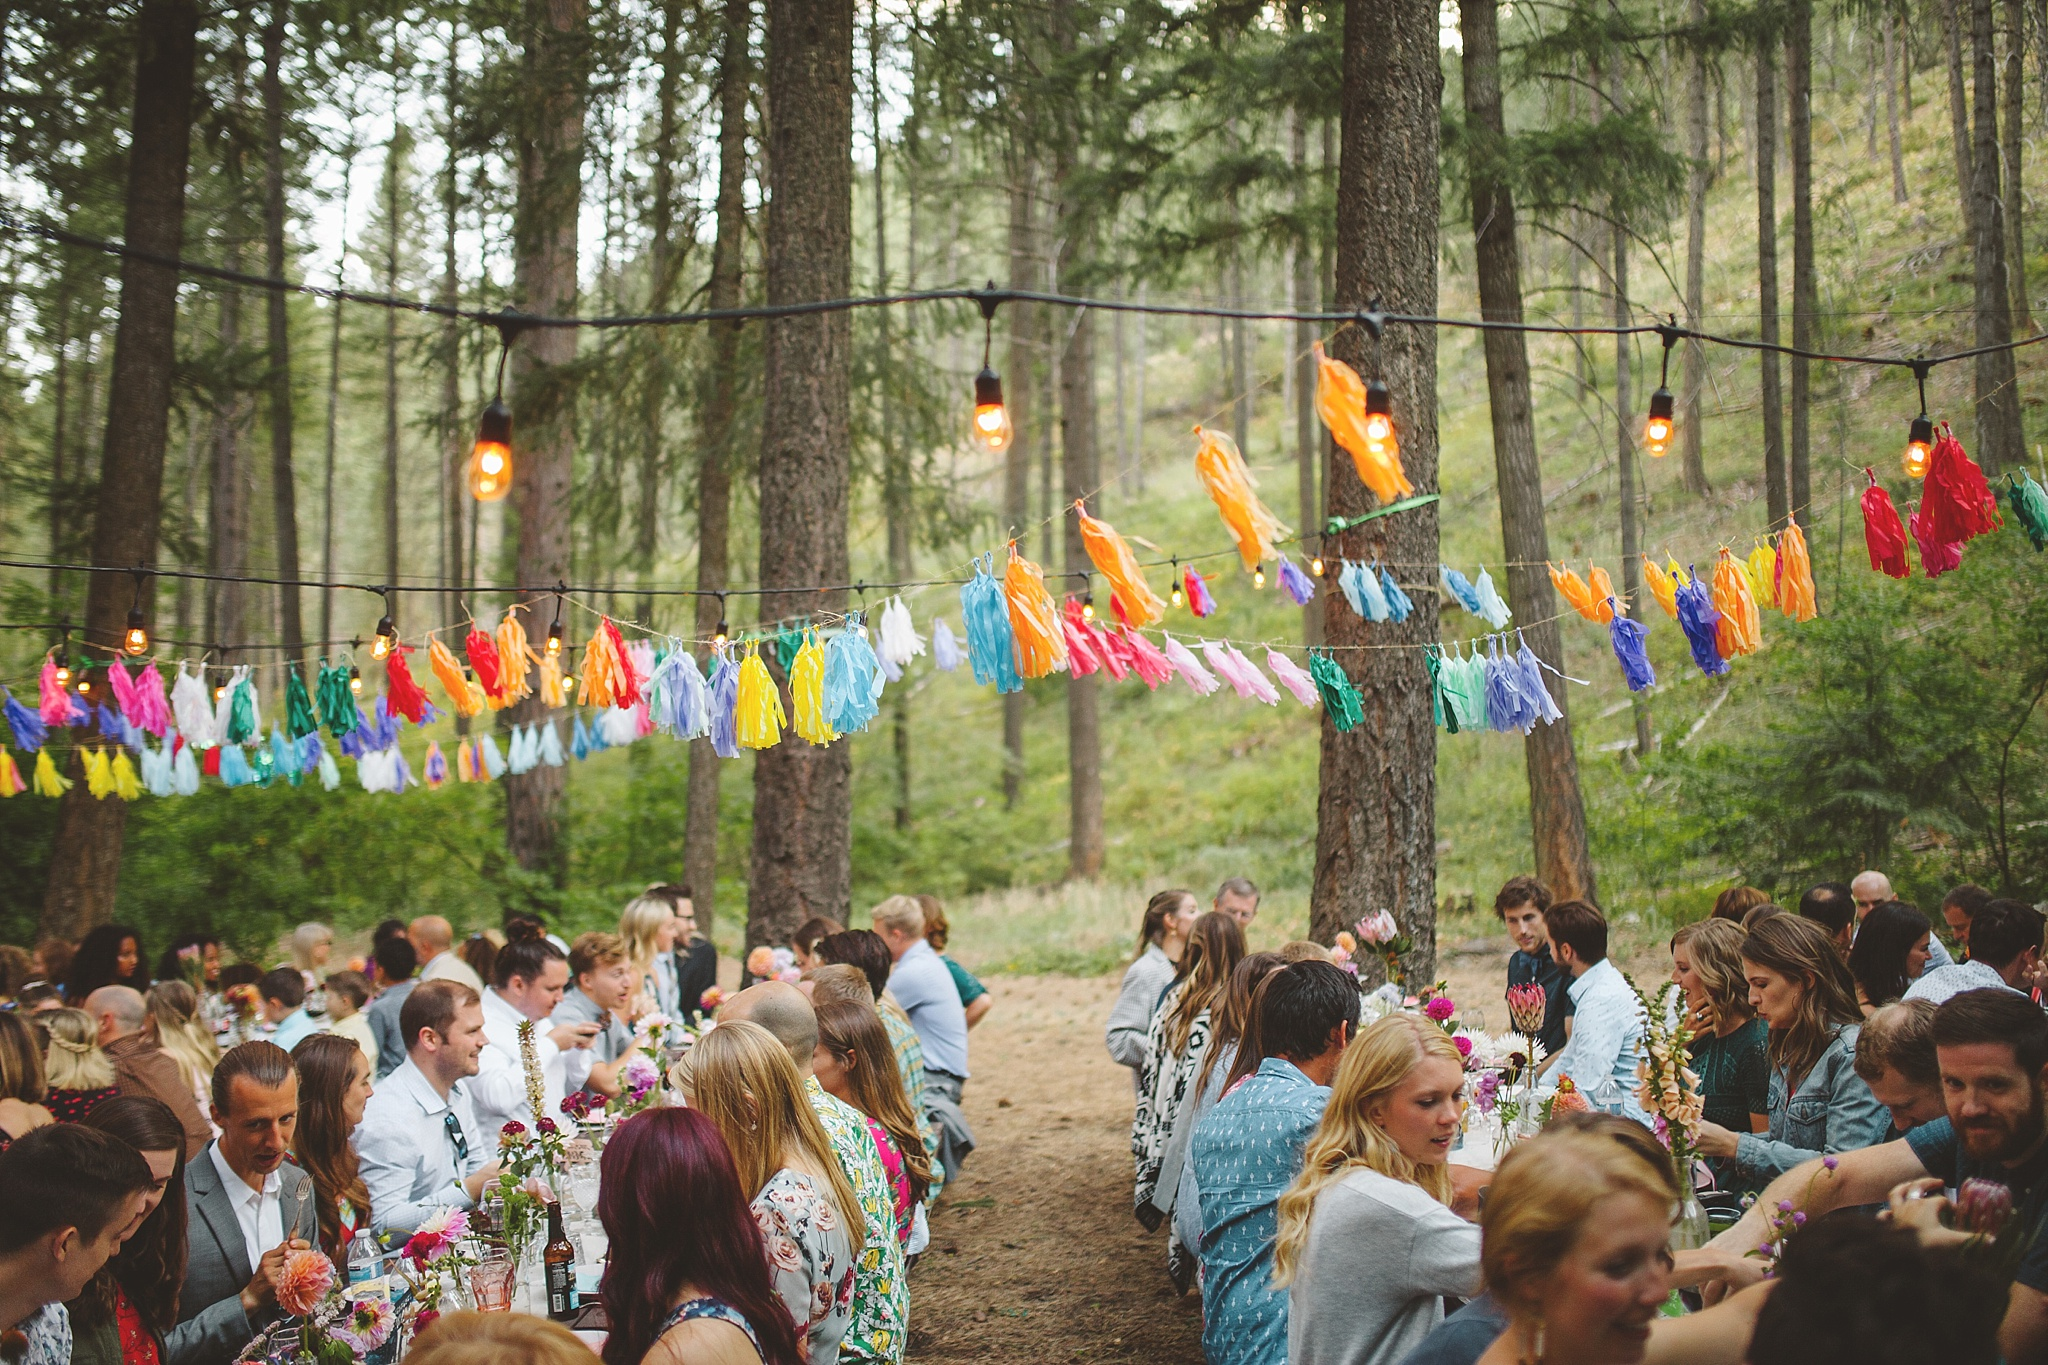 colorful outdoor wedding reception in woods